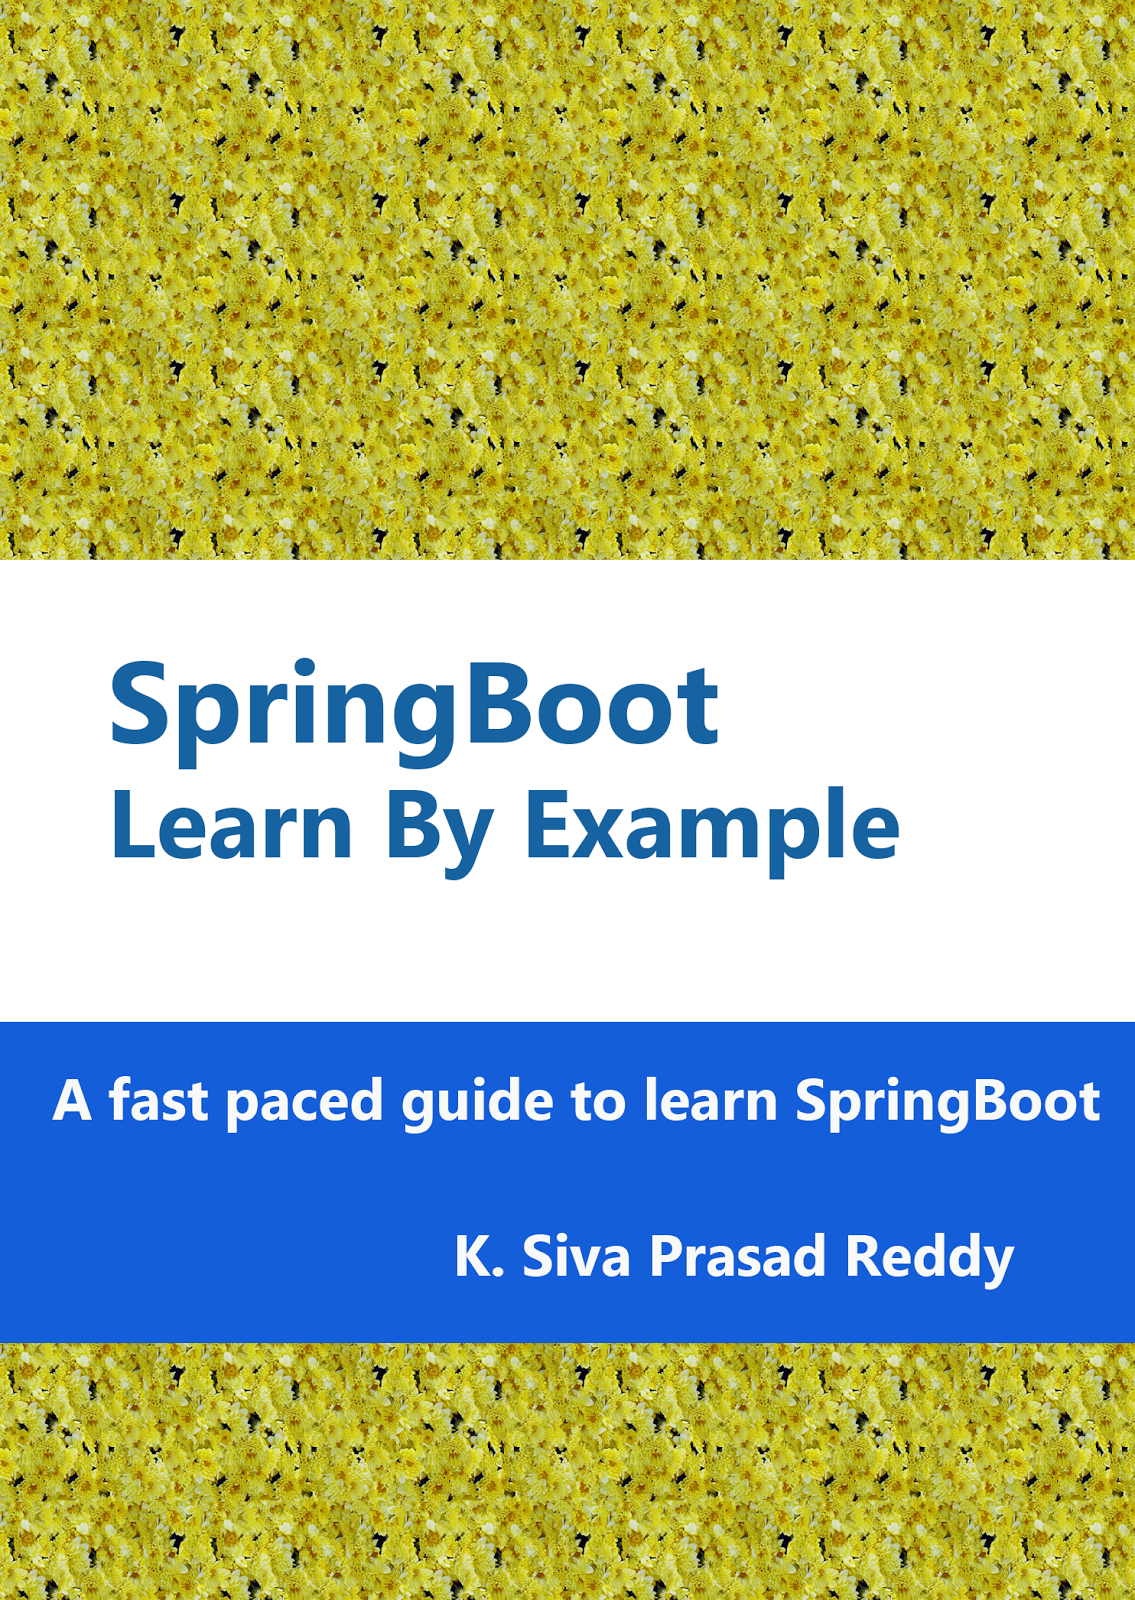 Sivalabs my experiments on technology angularjs tutorial getting springboot learn by example baditri Choice Image